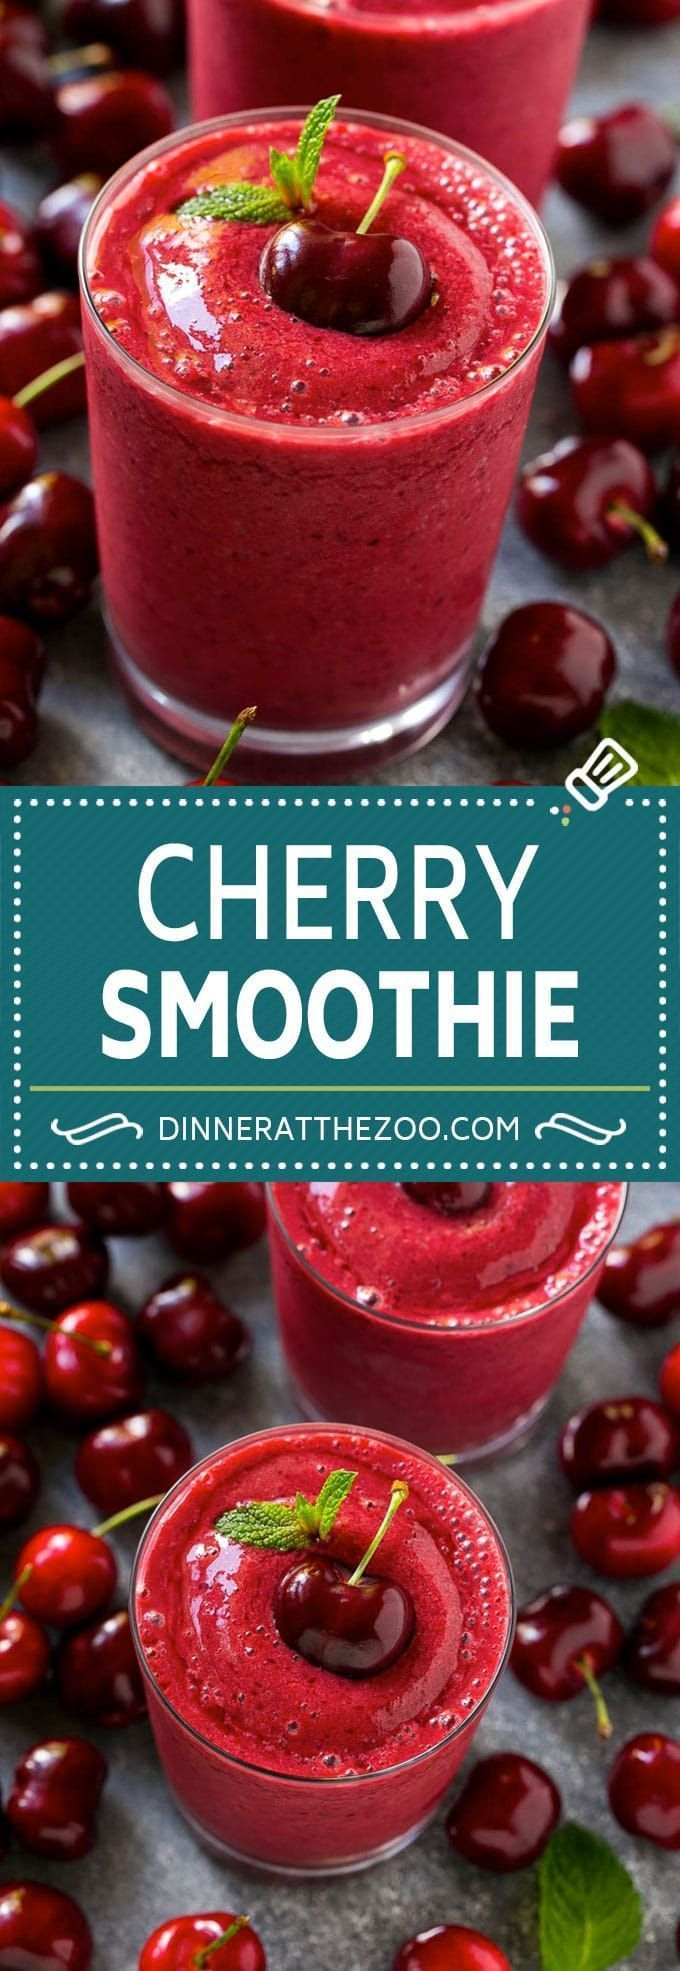 Cherry Smoothie Recipe | Healthy Smoothie | Easy Smoothie #cherry #smoothie #drink #dinneratthezoo #fruitsmoothie